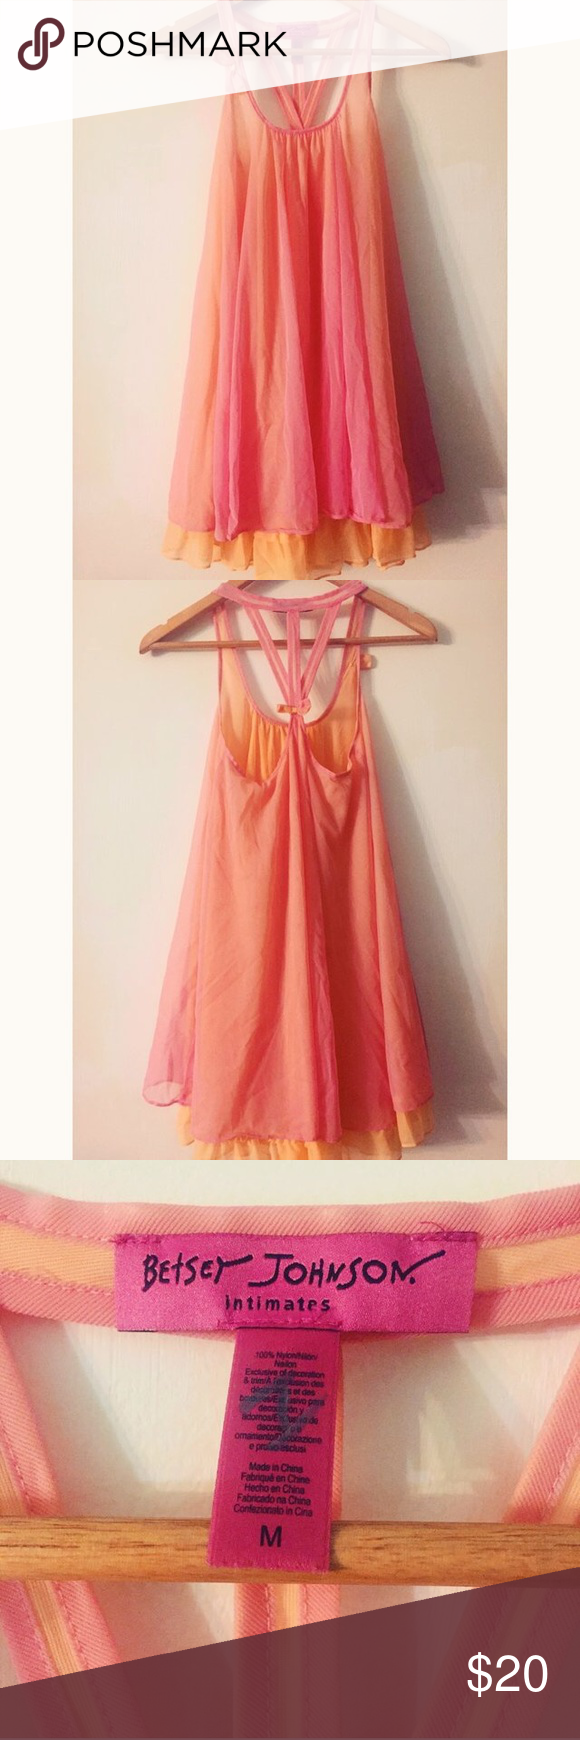 betsey johnson layered lingerie slip omg....this beautiful betsey johnson layered lingerie slip is literally the colors of a sunrise 🌅 size medium. gently worn, but in great condition; no notable signs of wear! semi-sheer & bow accents 🎀 might just have to keep this for myself if it doesn't sell soon! 😍 any questions, feel free to ask! thanks for looking ✌🏼️ Betsey Johnson Intimates & Sleepwear